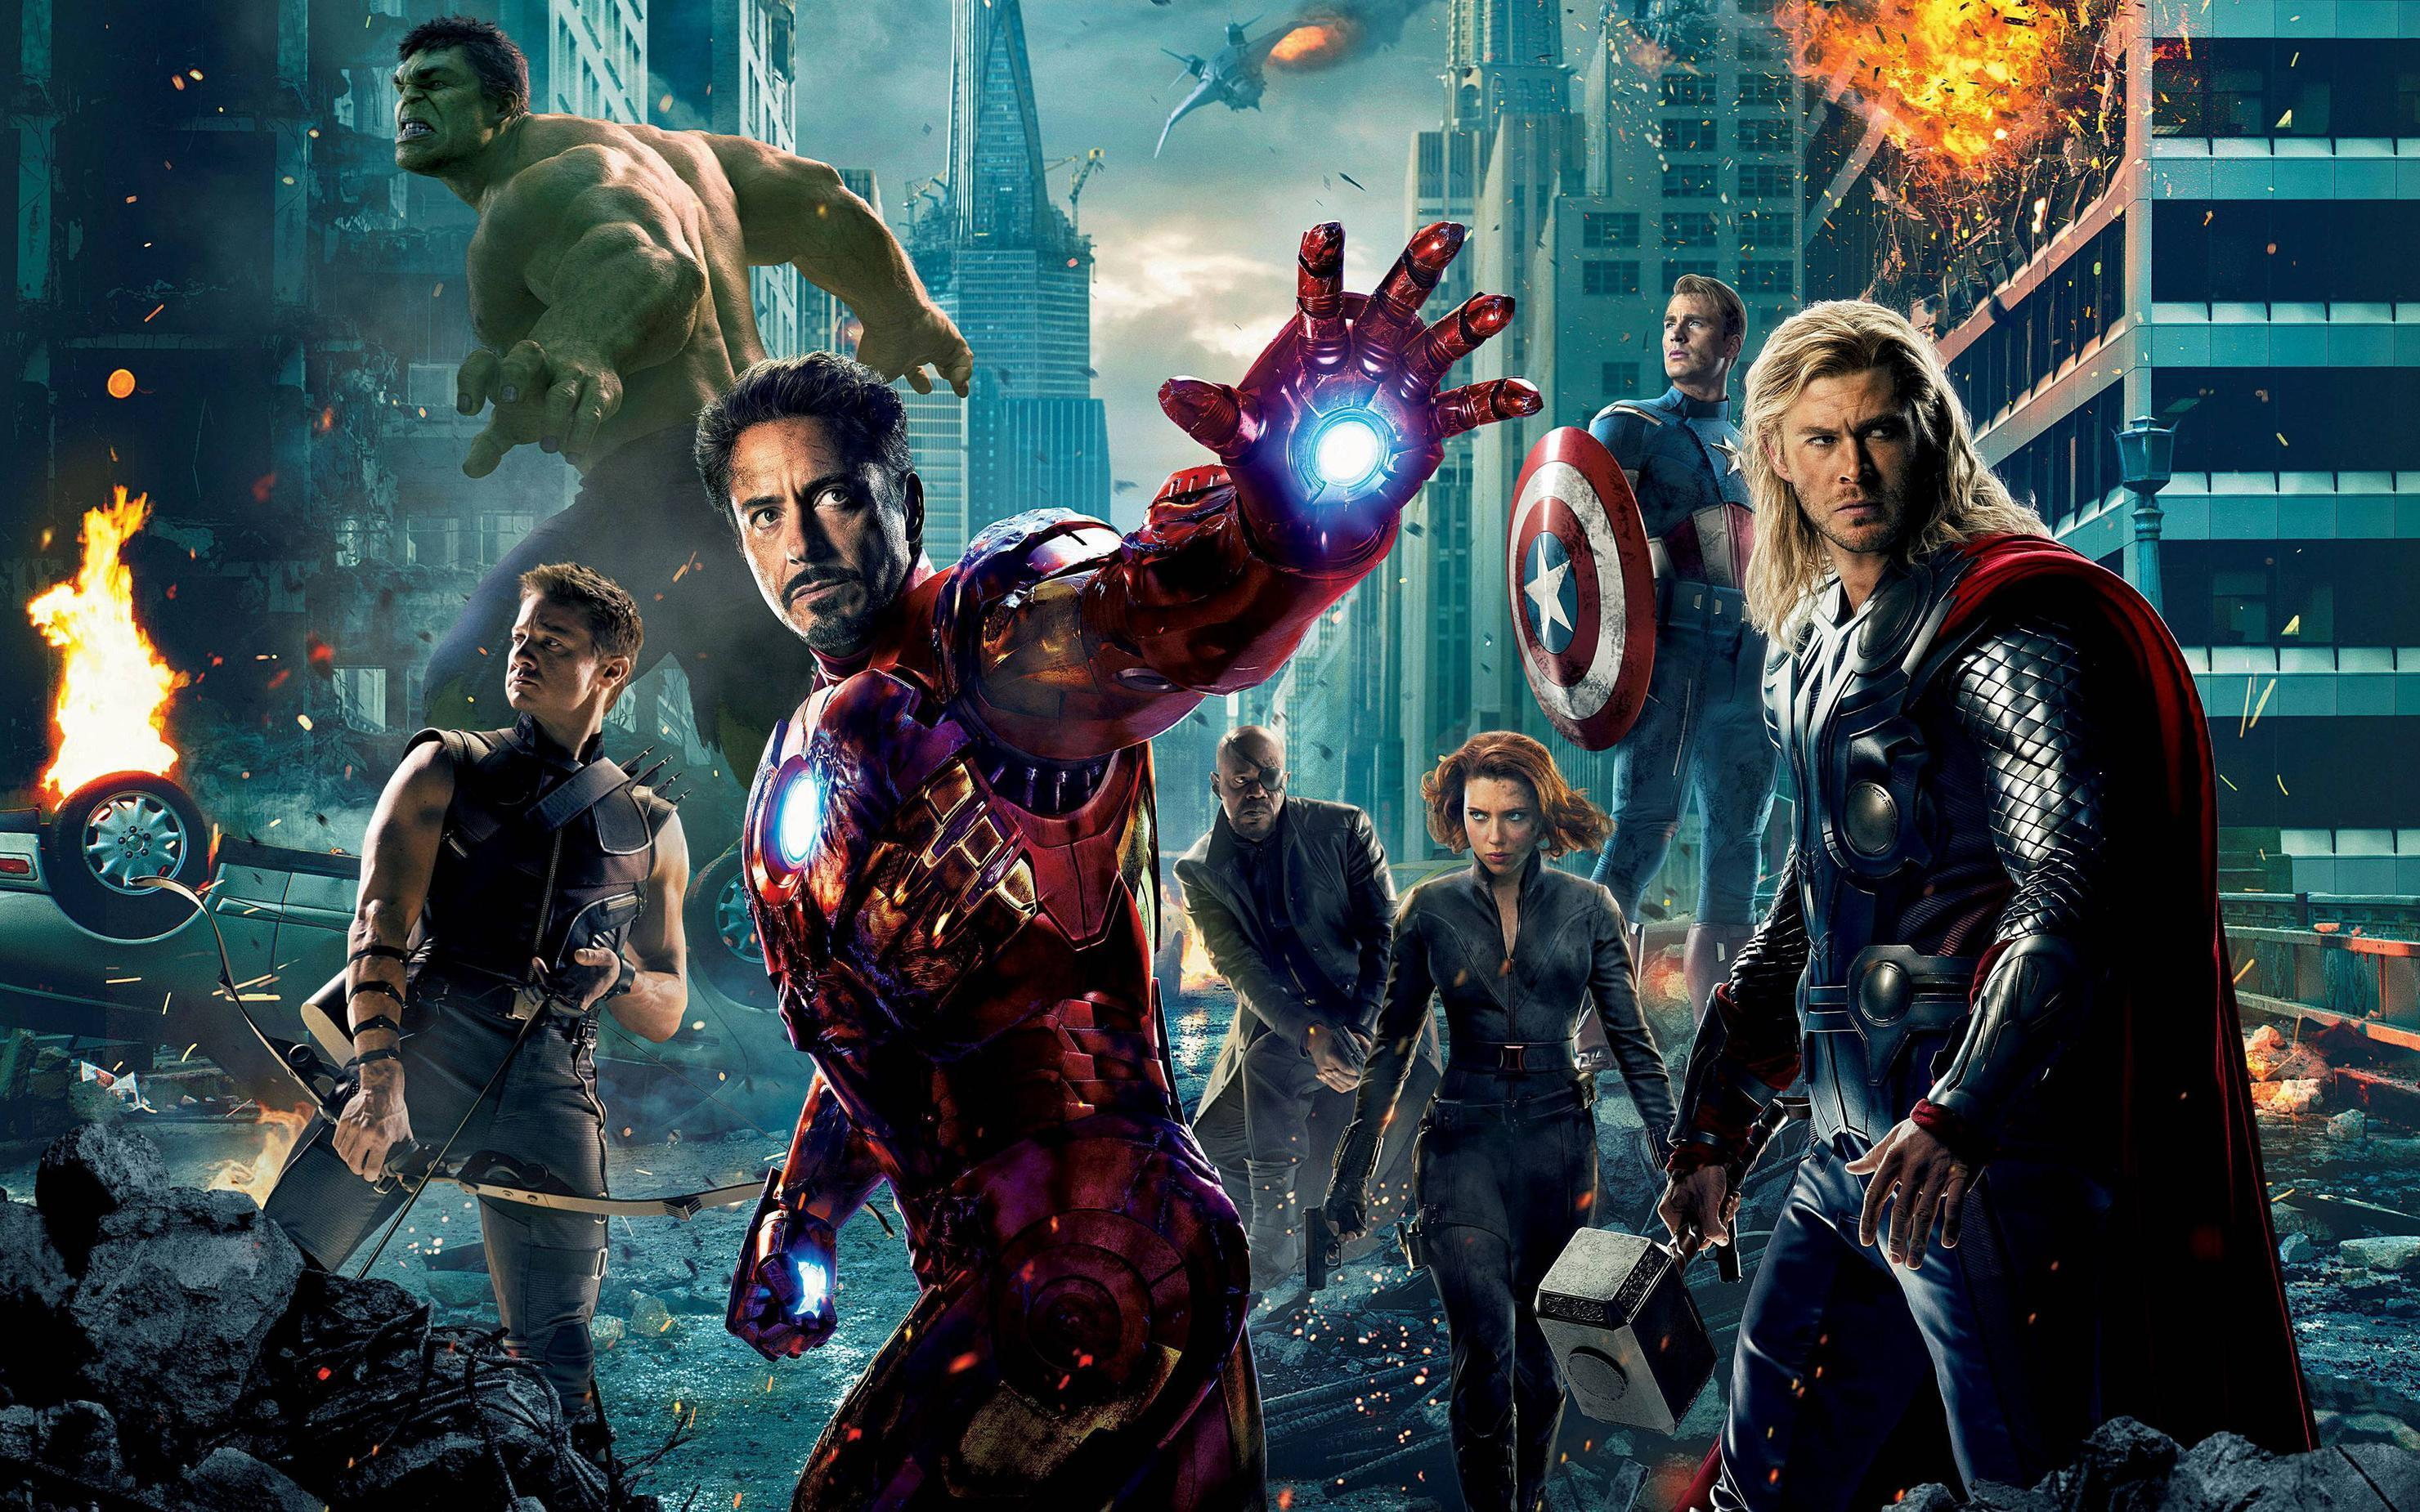 The Avengers Wallpapers - Page 2 - HD Wallpapers